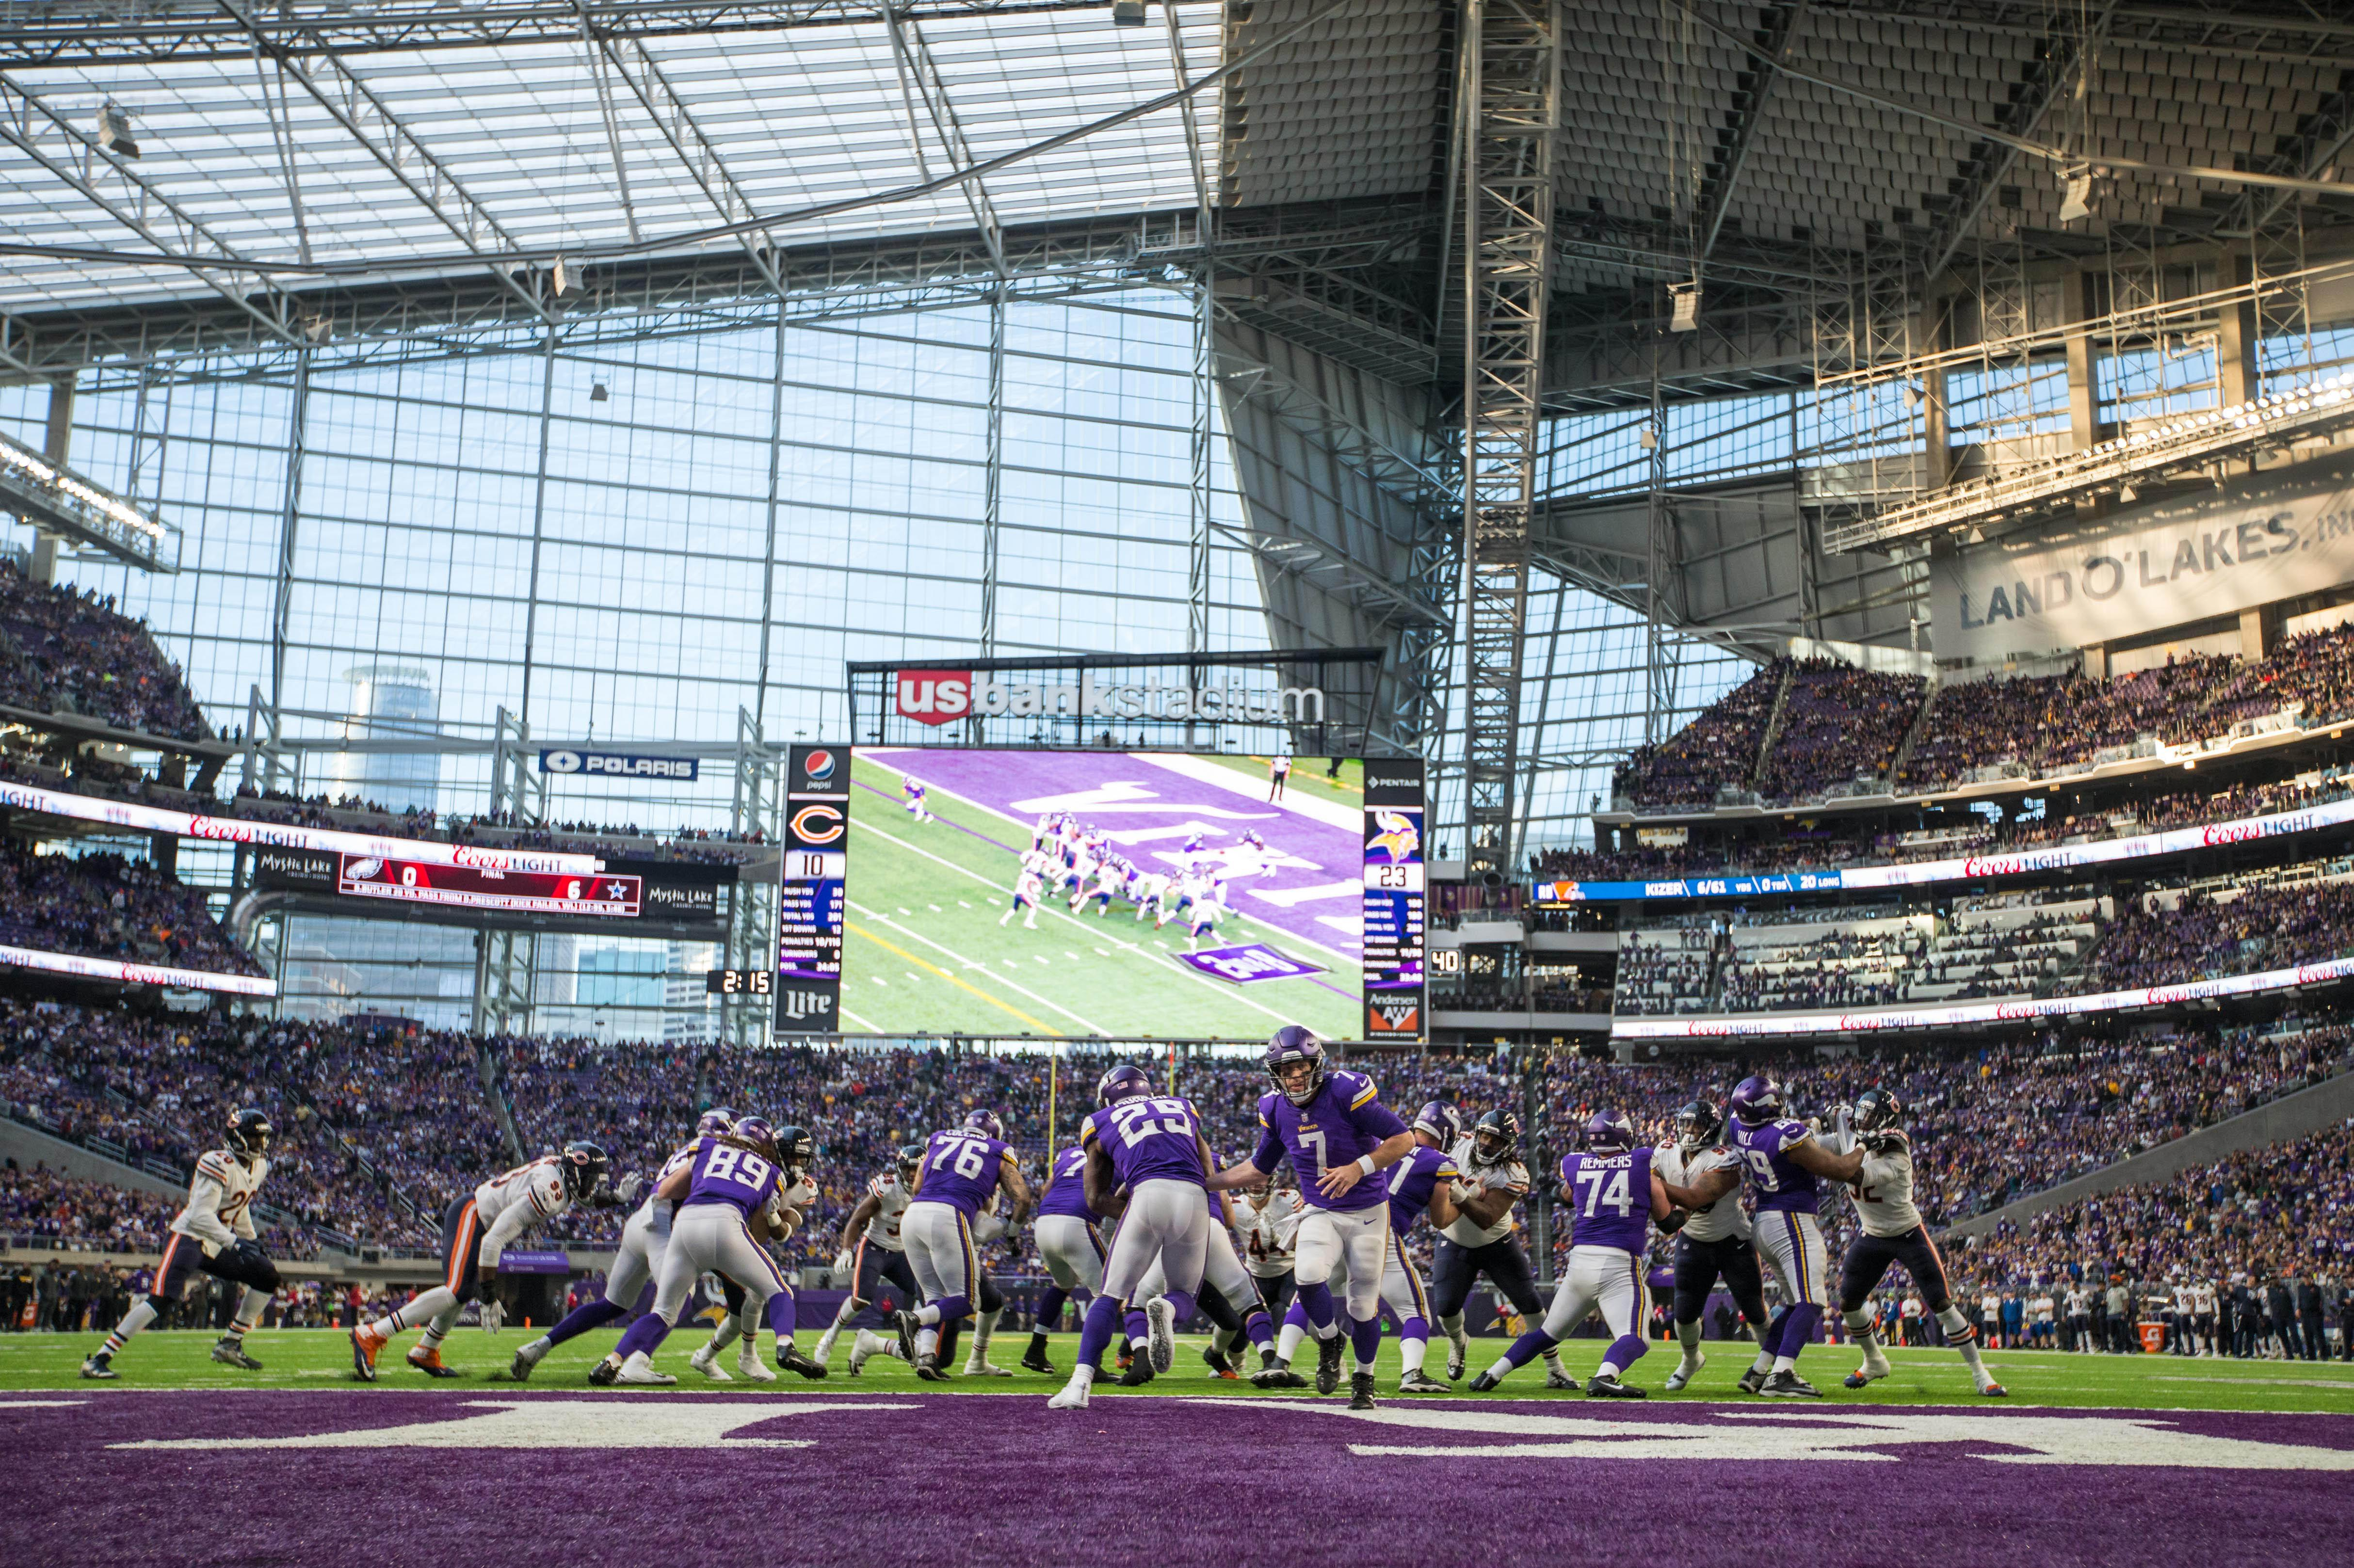 Minnesota Vikings are hoping to reach a home Super Bowl at US Bank Stadium